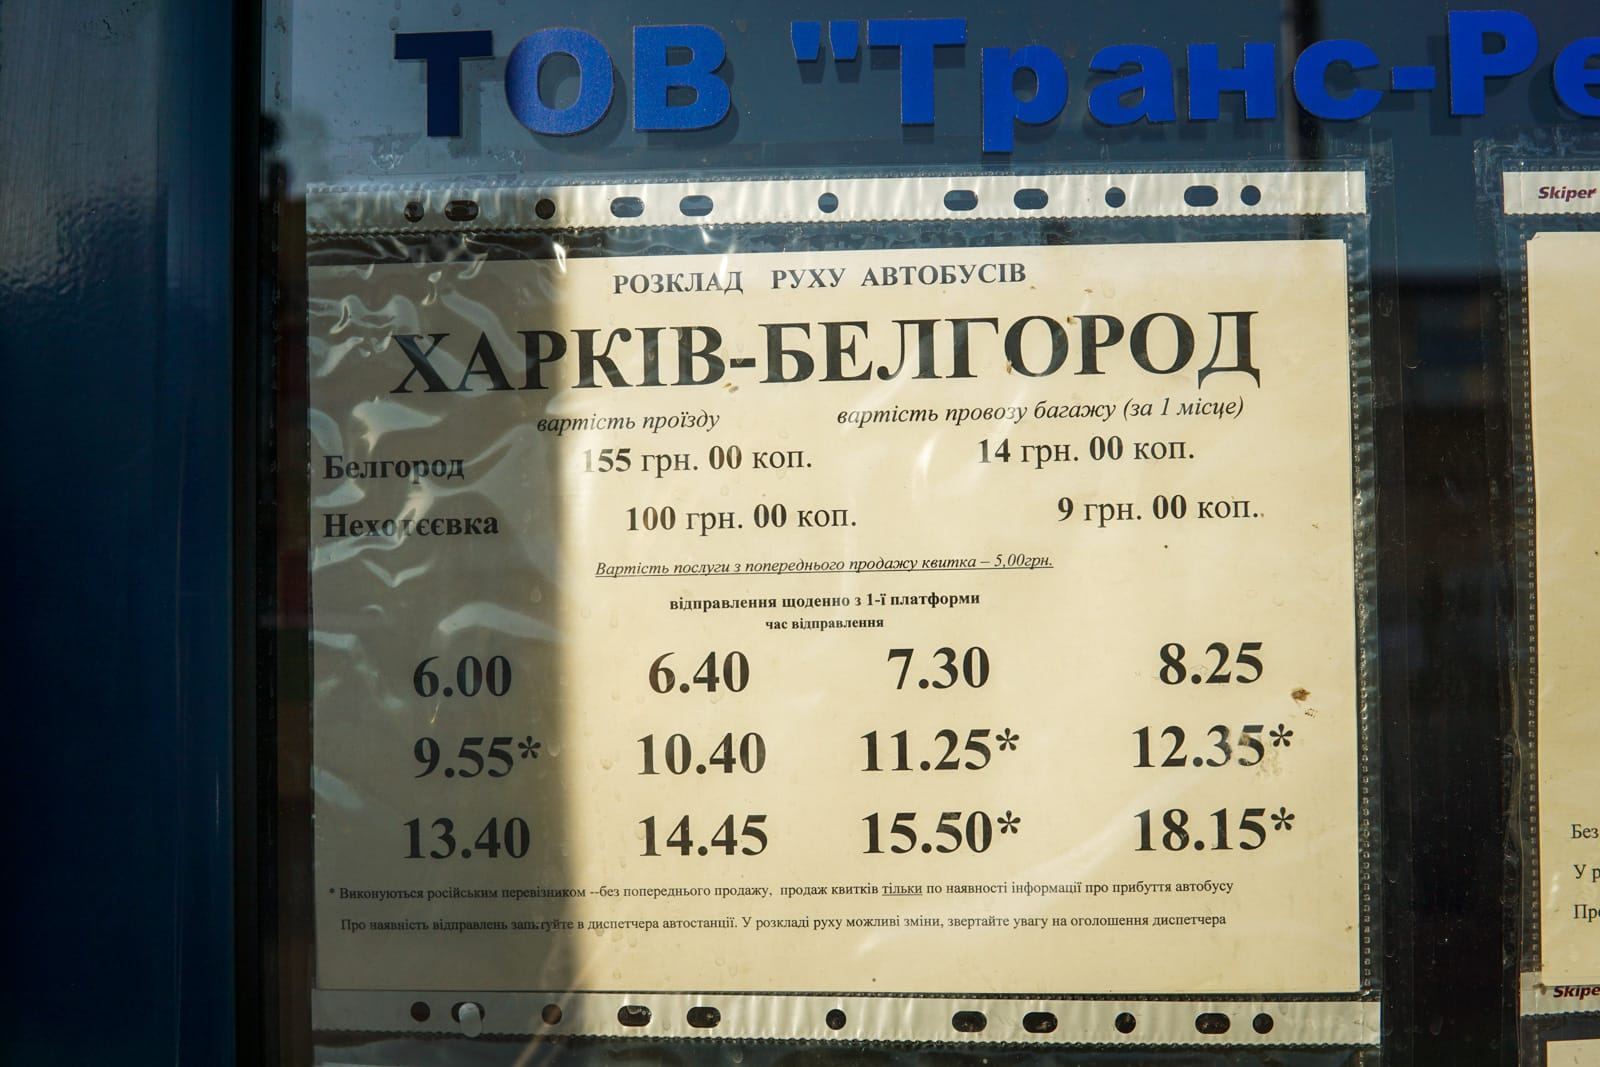 Bus ticket times and prices for Kharkiv to Belgorod, Russia